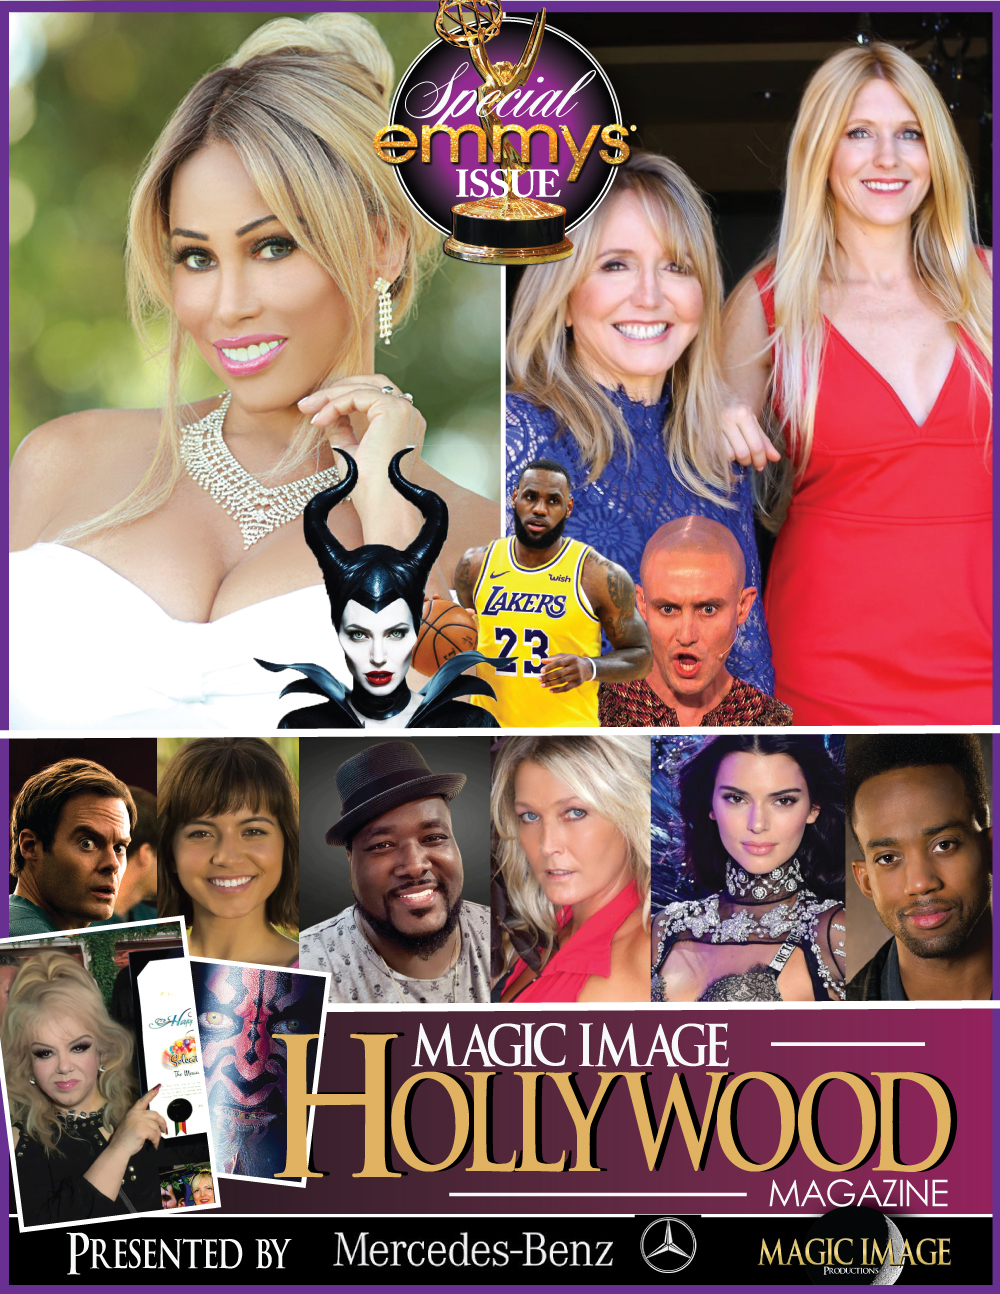 MAGIC-IMAGE-HOLLYWOOD-MAGAZINE-LAUNCH-EMMYS-ISSUE